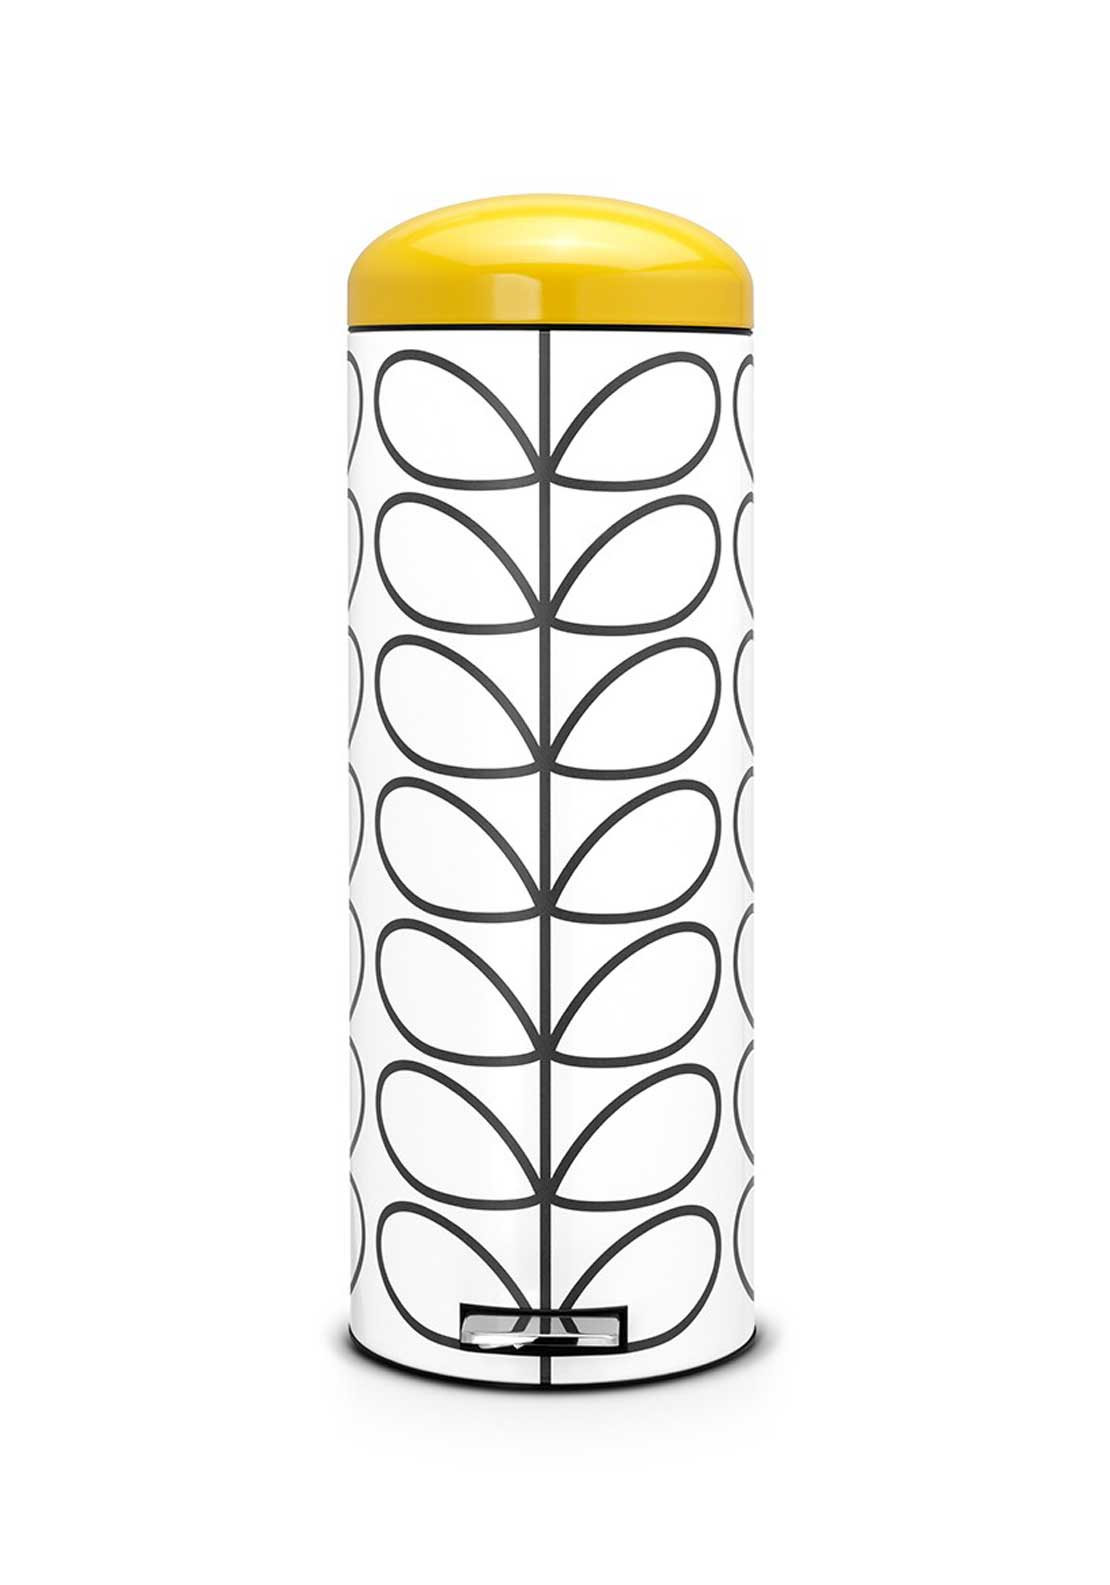 Orla Kiely Retro Silent Bin by Brabantia Kiely in Linear Stem Print, Cream, 20ltr